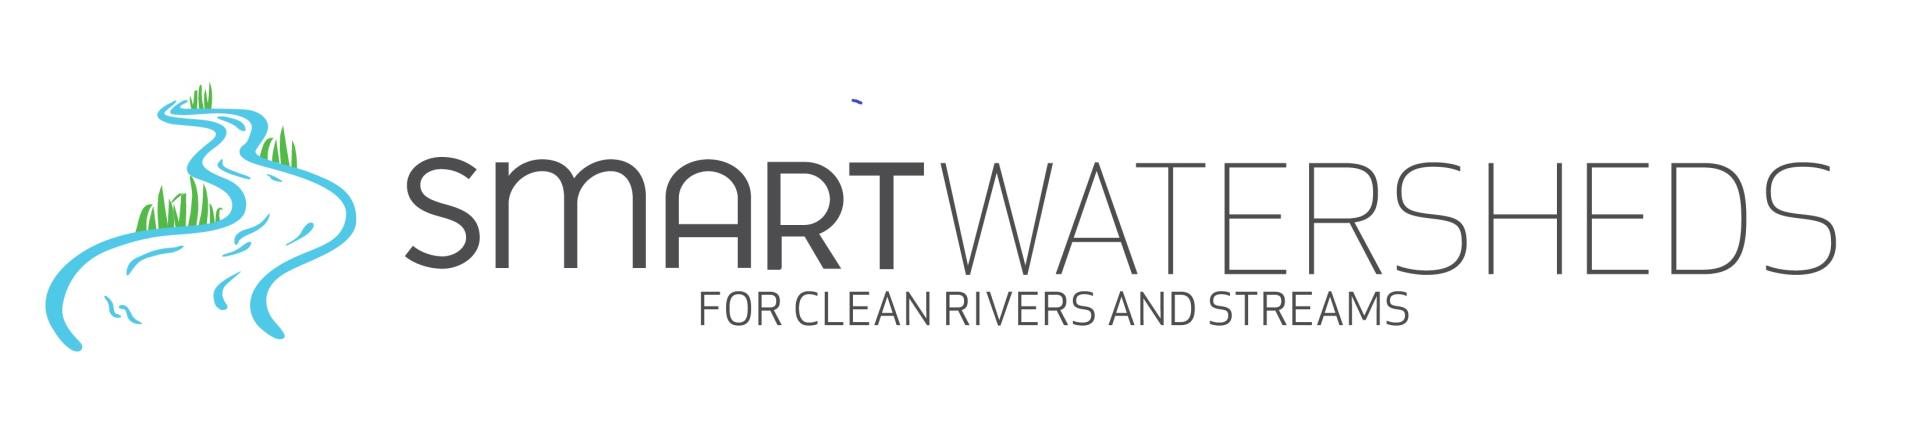 Smart Watersheds For Clean Rivers and Streams Logo